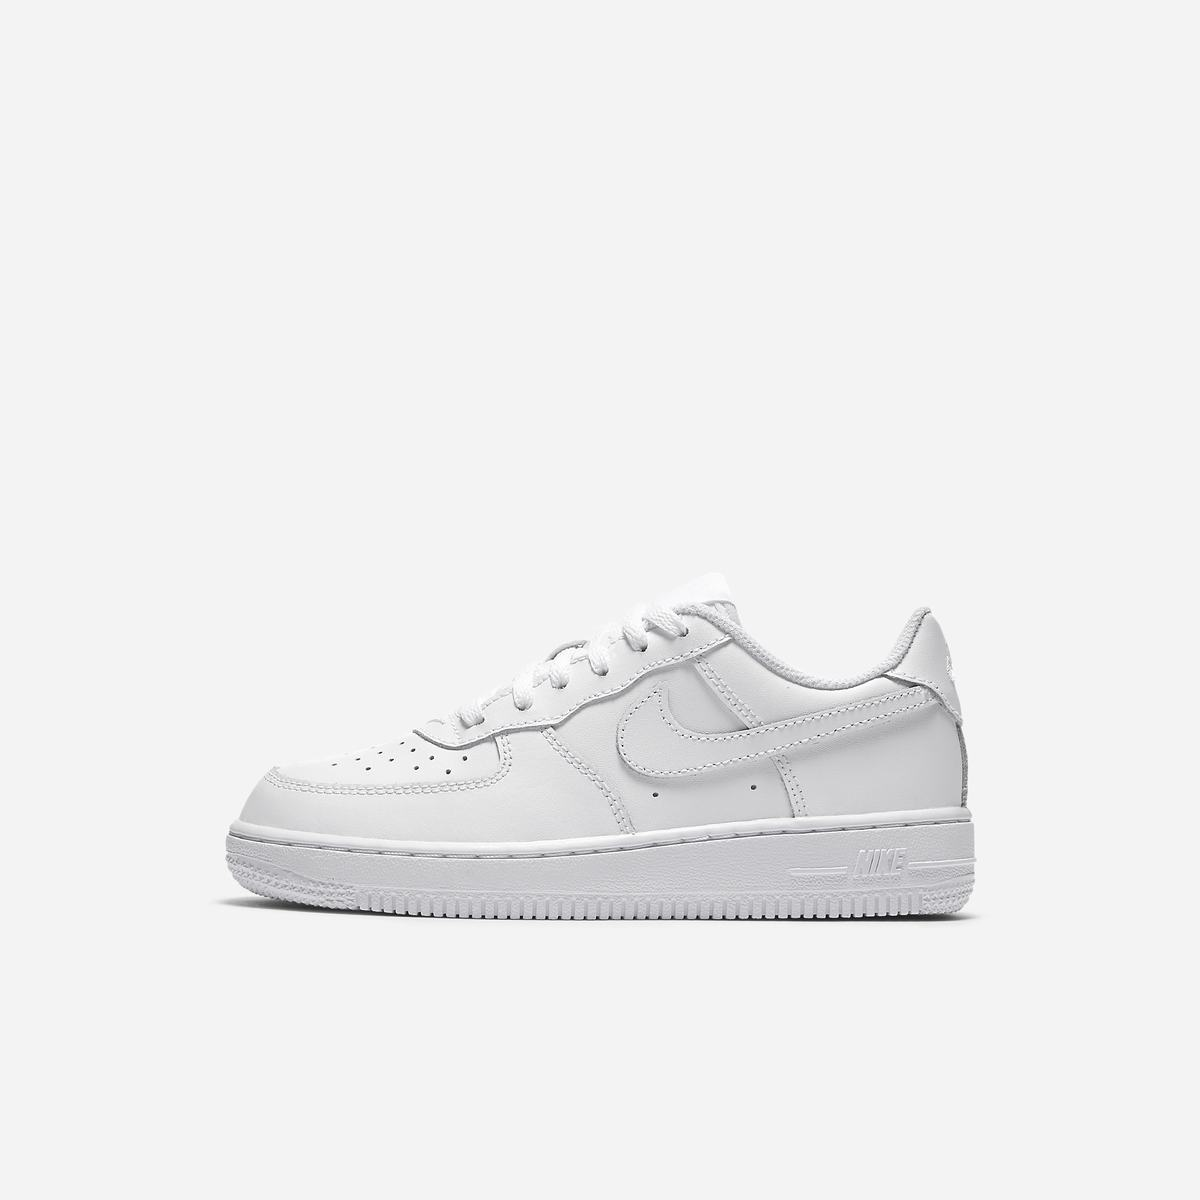 on sale 82fa3 1f10d NIKE cheap nike air force 1 ...